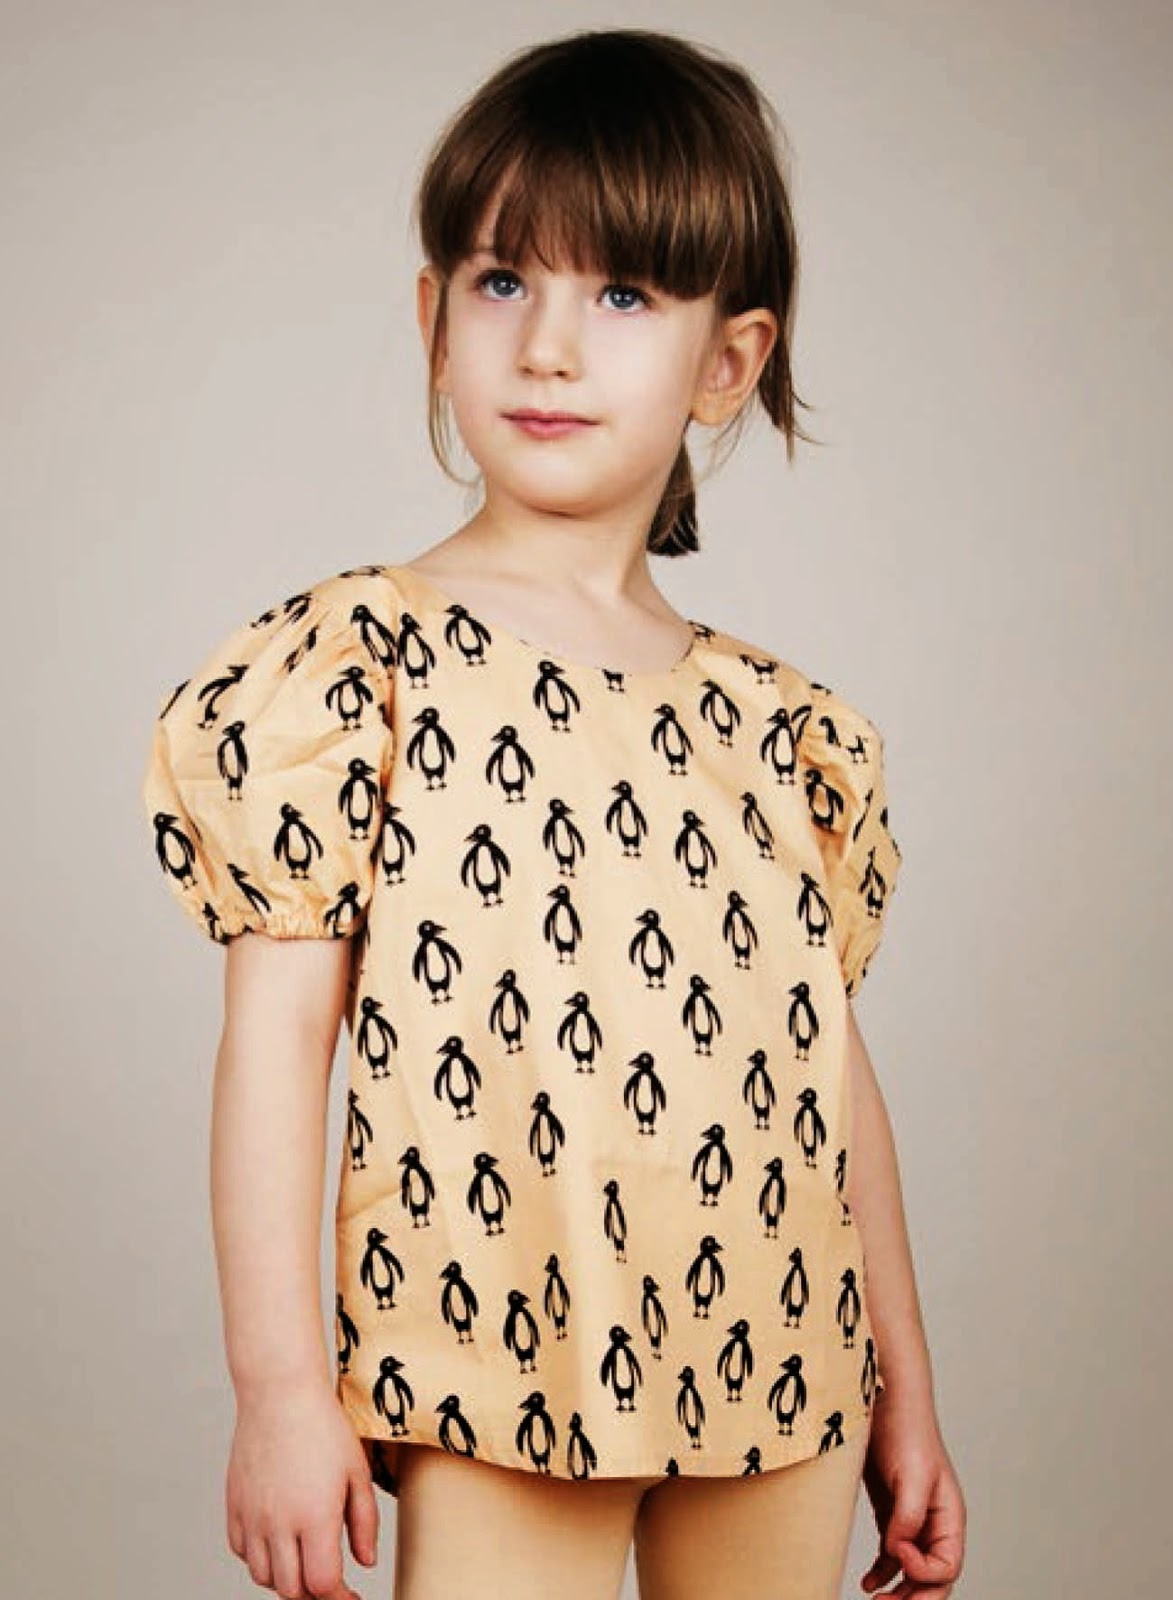 Pengus Blouse Mini Rodini Estocolmo Kids Adopt an animal